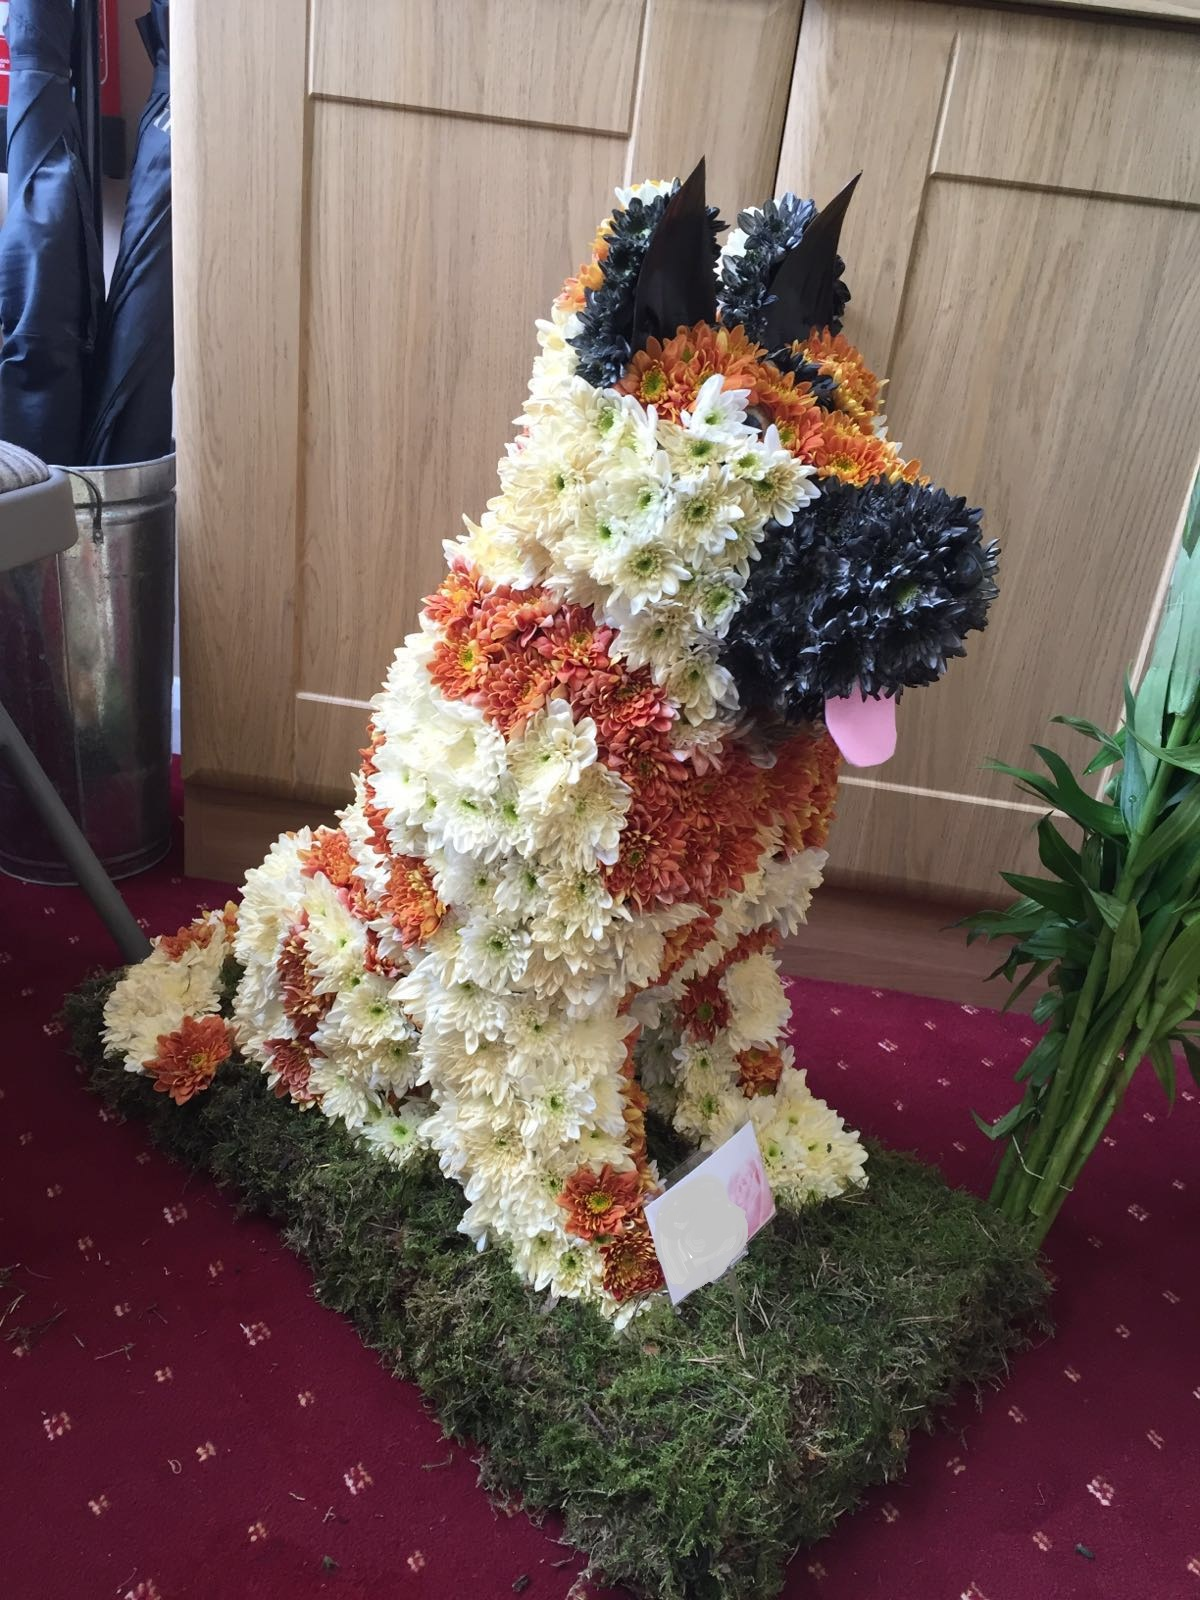 Themed floral tributes first impression flowers floral german shepherd izmirmasajfo